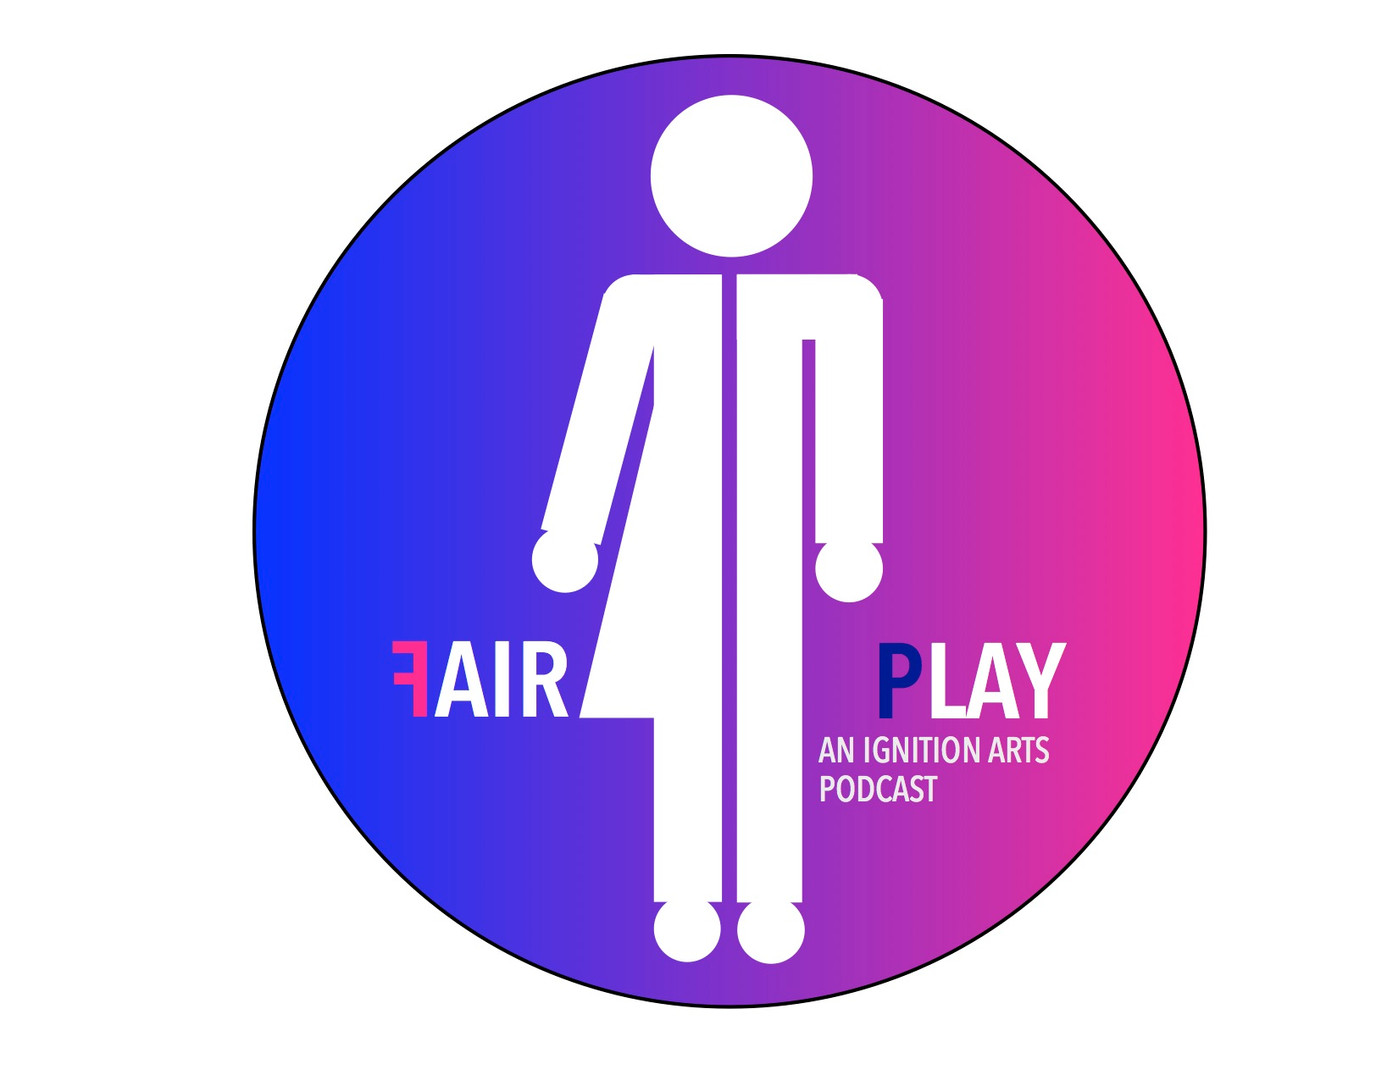 Fair Play Podcast